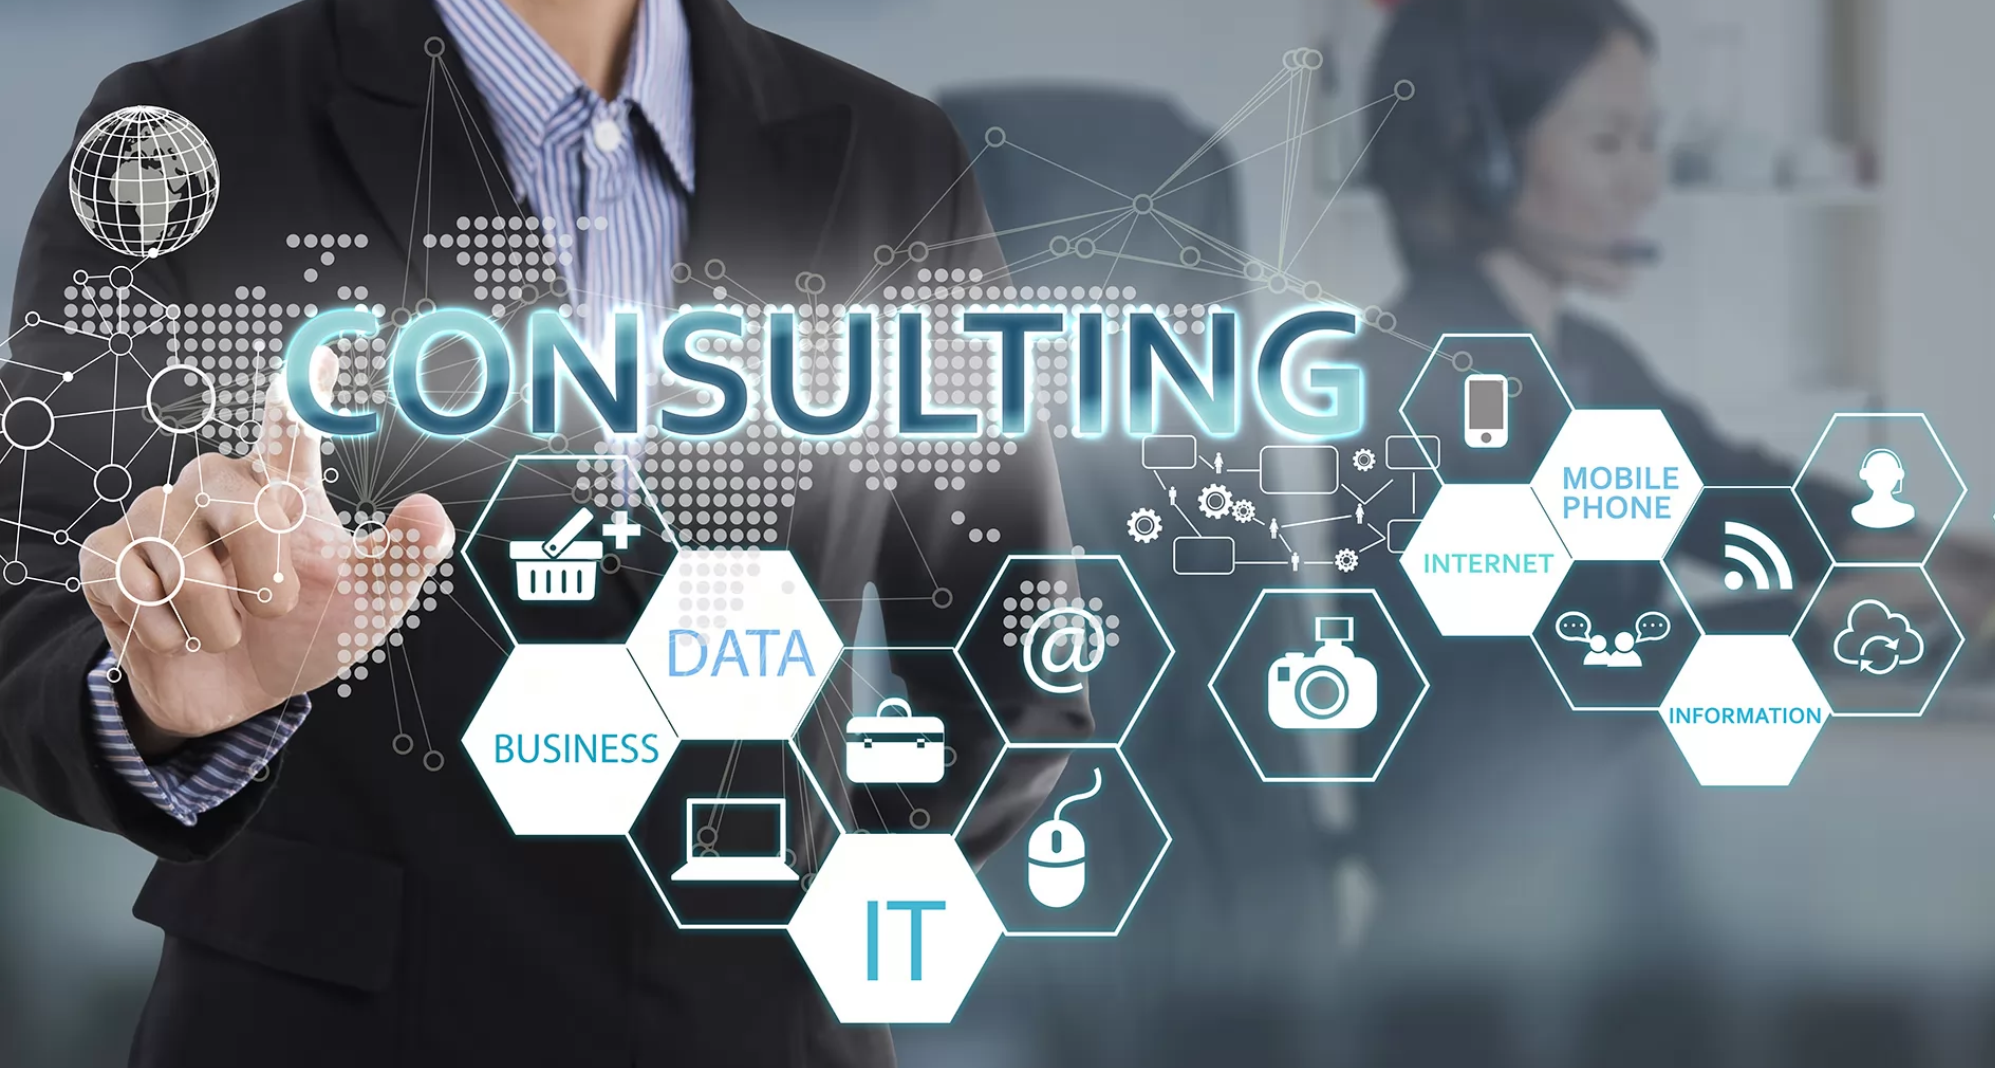 Consulting Services | AIR Worldwide